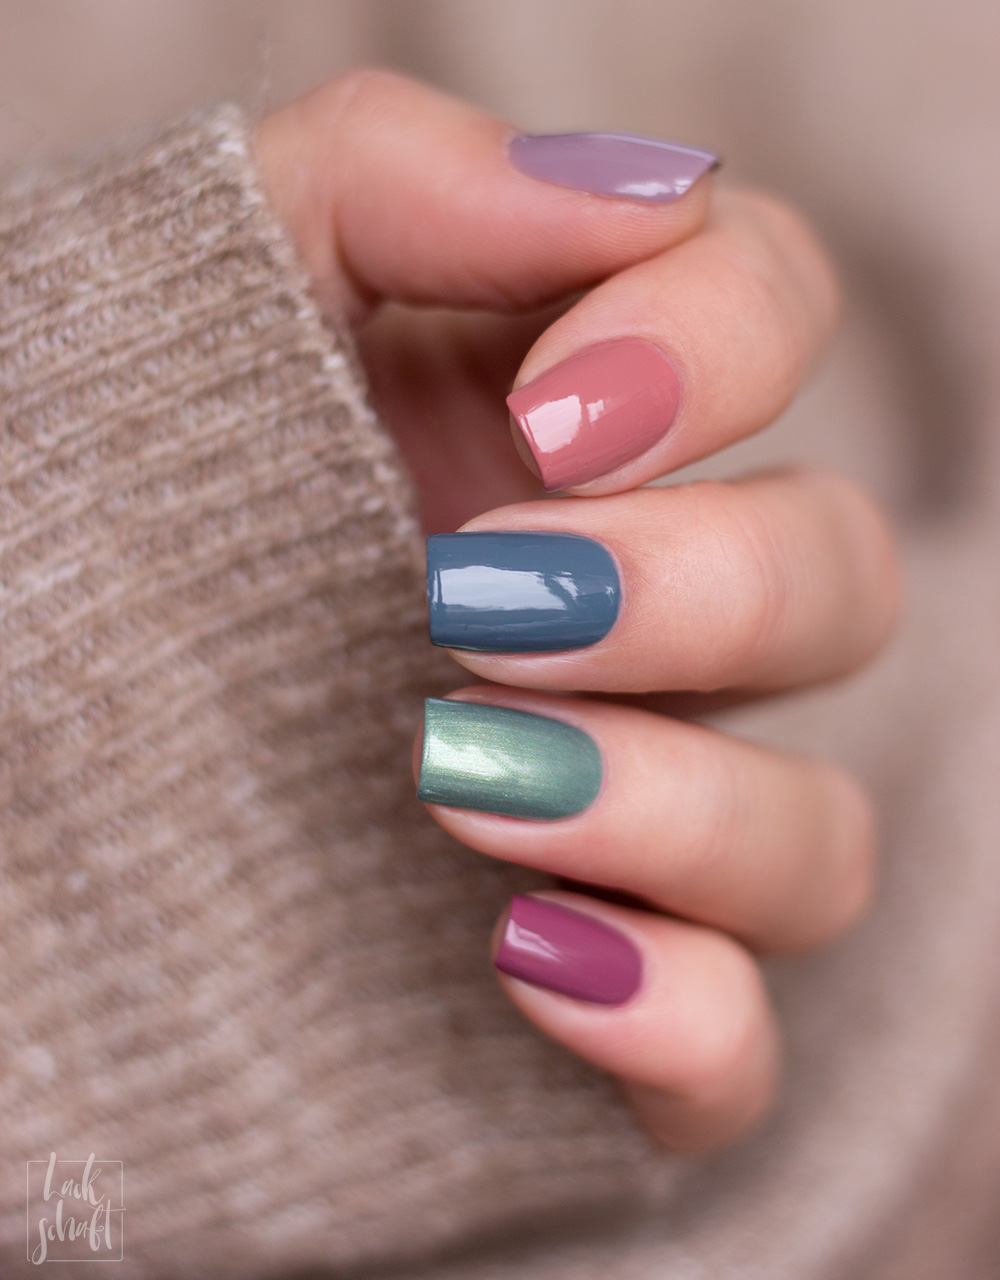 Alessandro-Life-Colours-Kollektion-Nagellacke-mysterious-water-find-your-fire-down-to-earth-infinite-energy-air-symphony-swatch-4